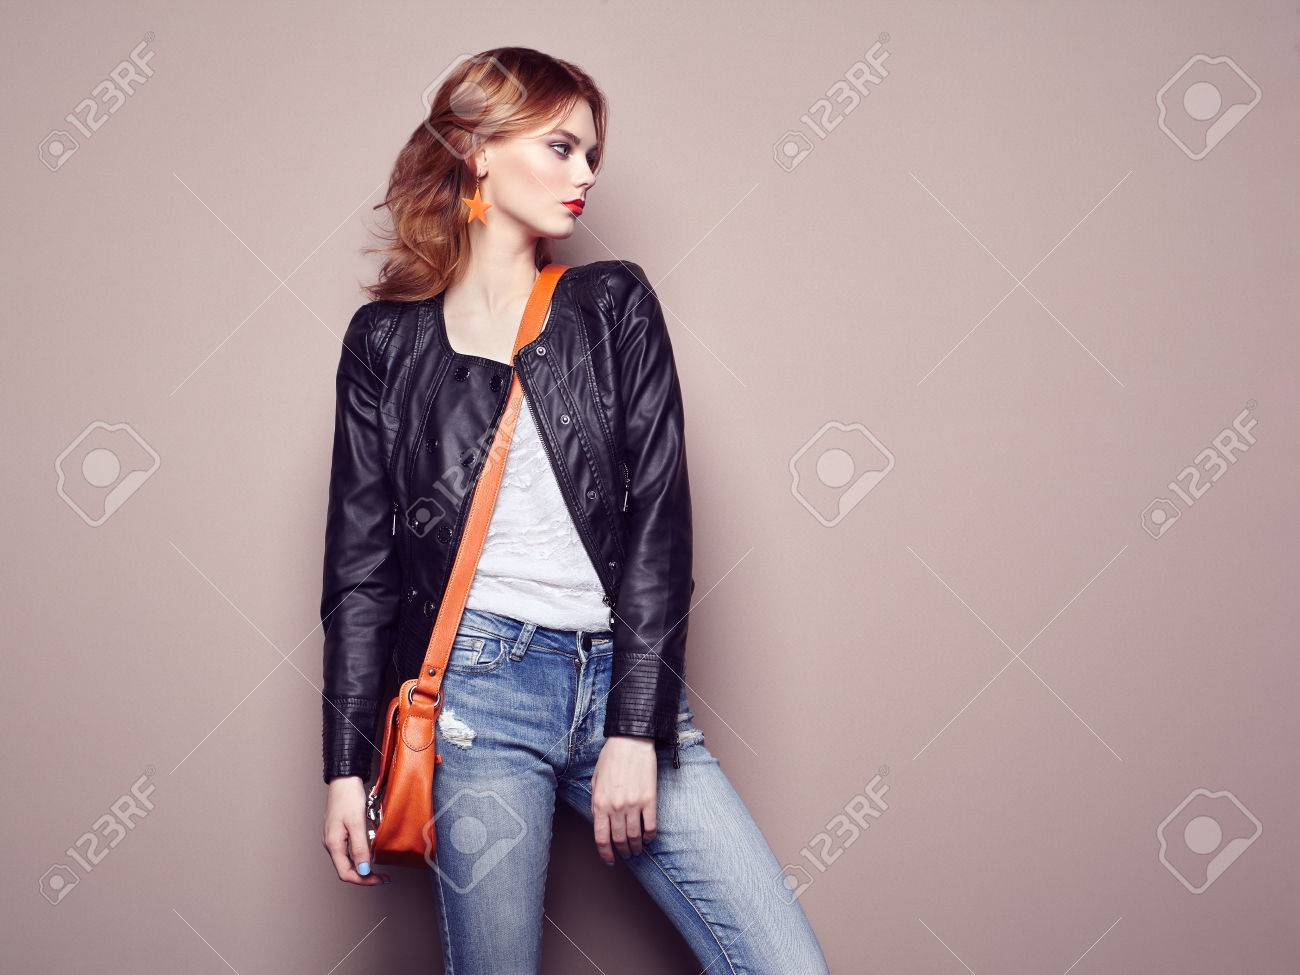 Fashion portrait of beautiful young woman with red hair. Girl in blouse and jeans. Jewelry and hairstyle. Girl with handbag - 58519885